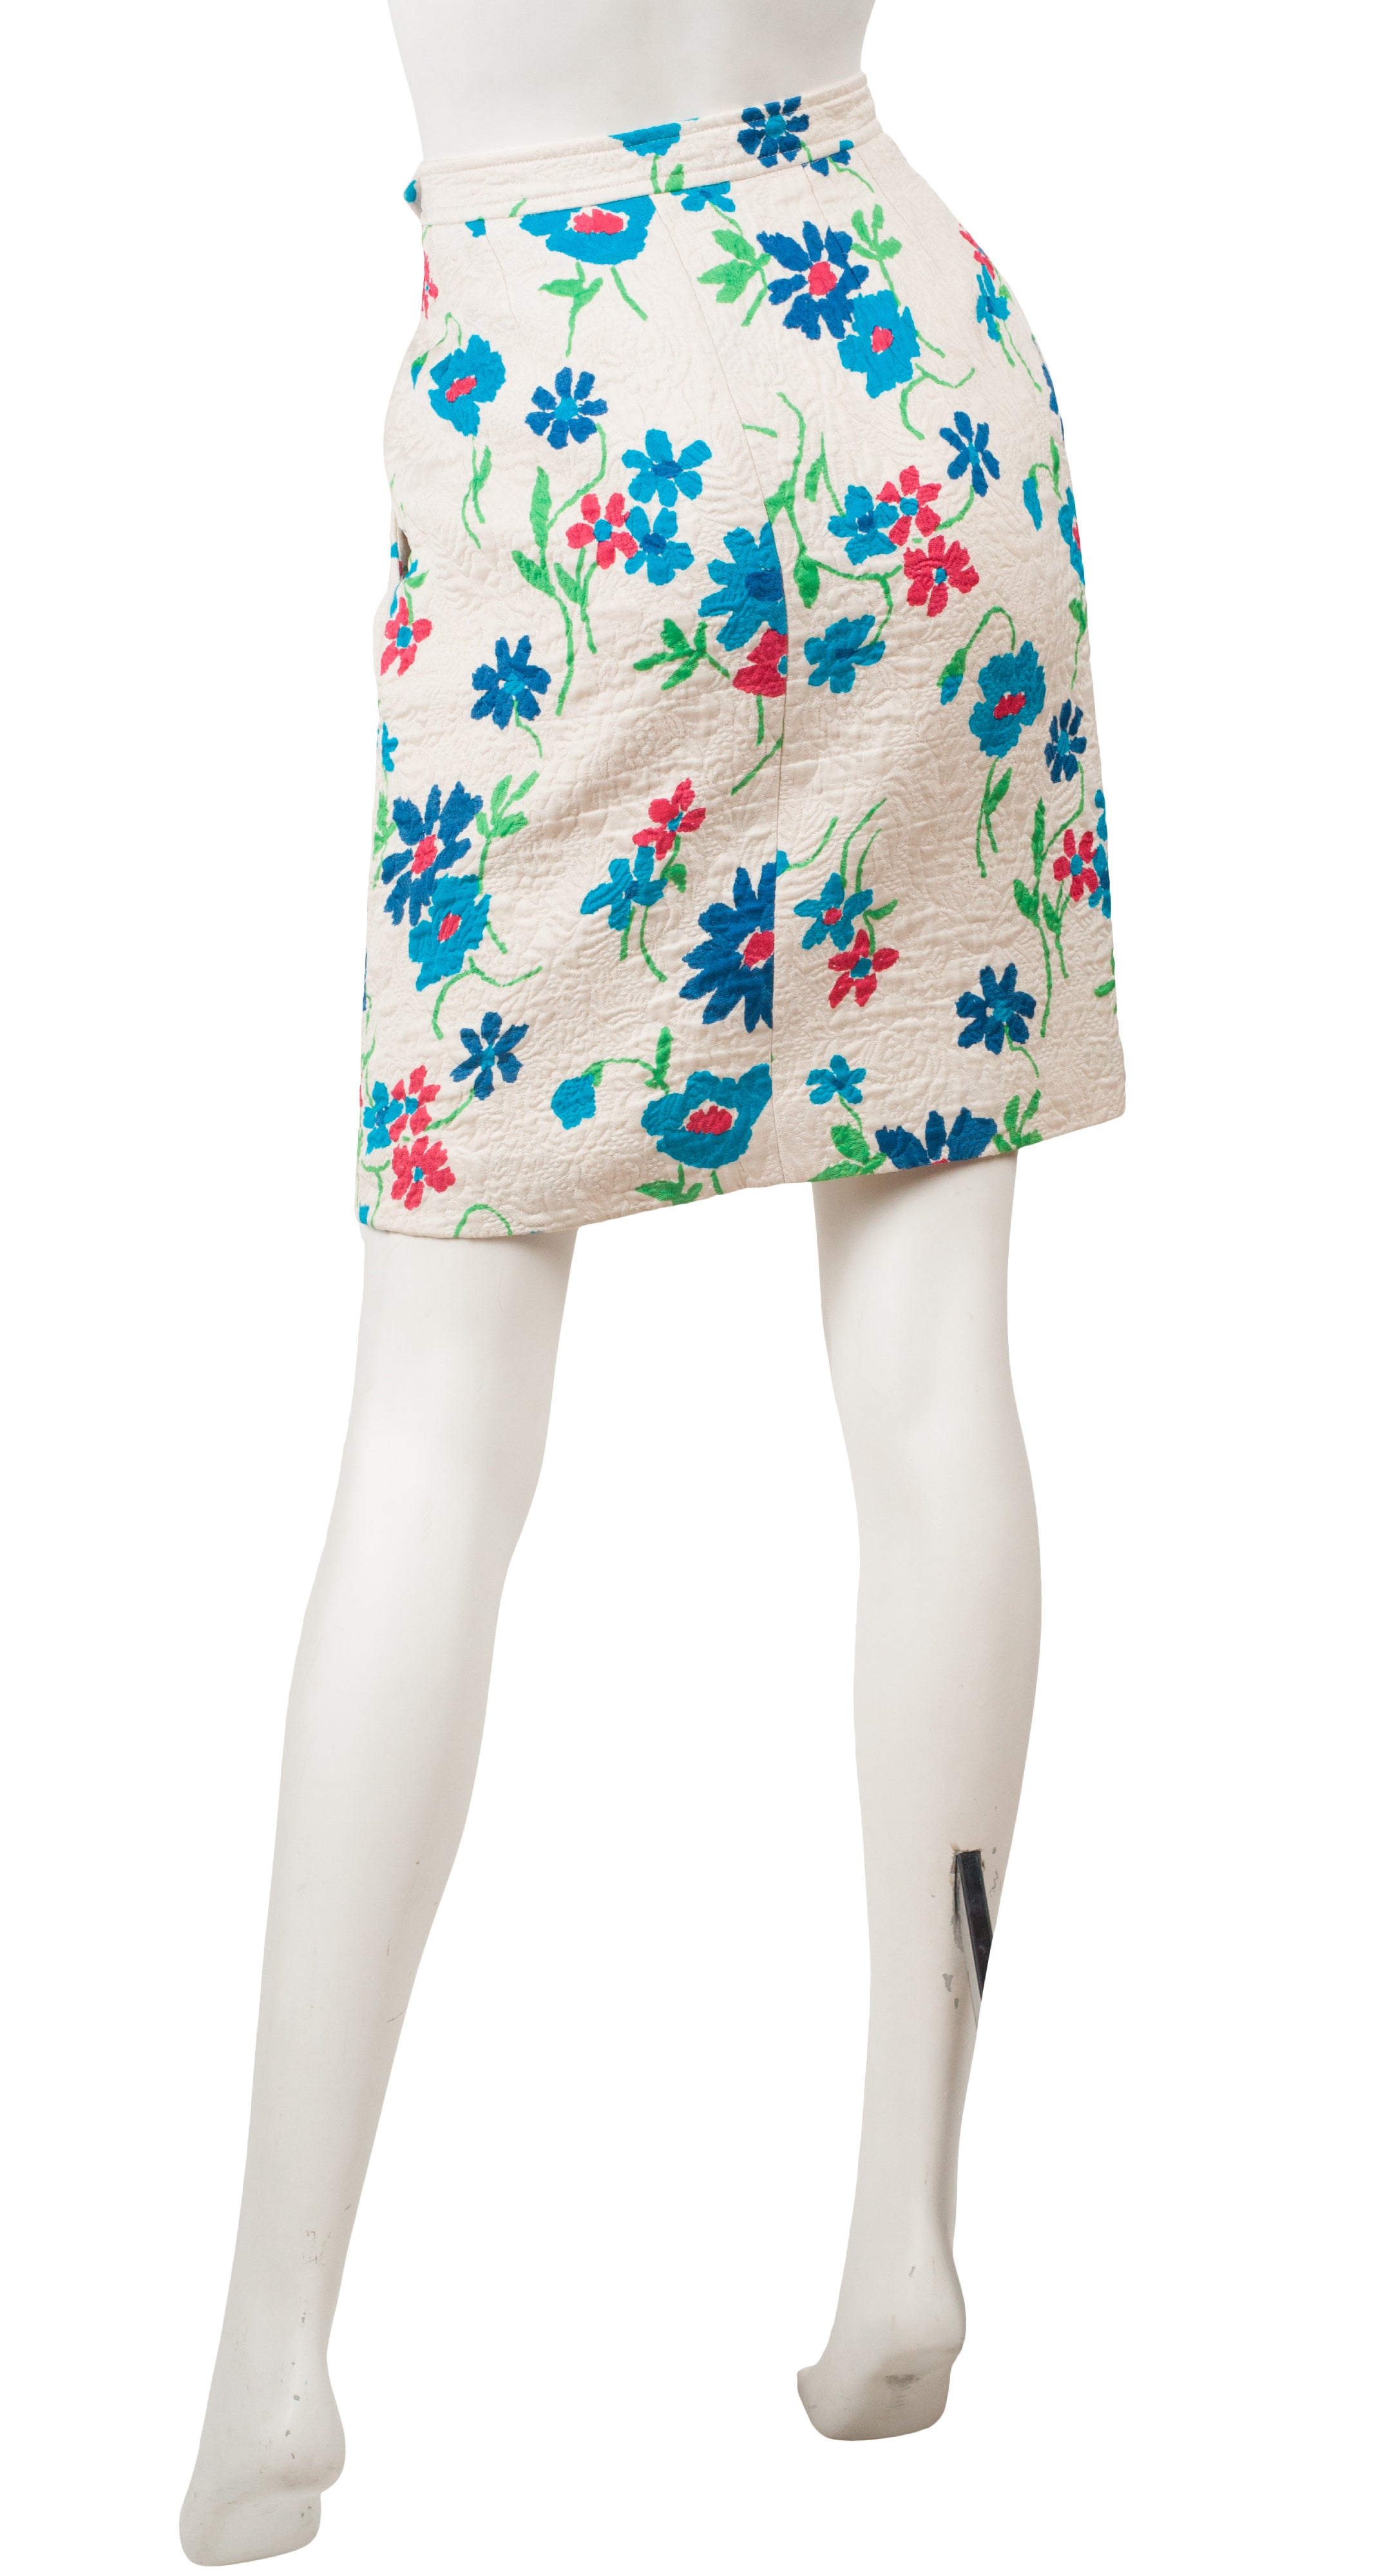 1990s Floral White Quilted Cotton & Wool Pencil Skirt